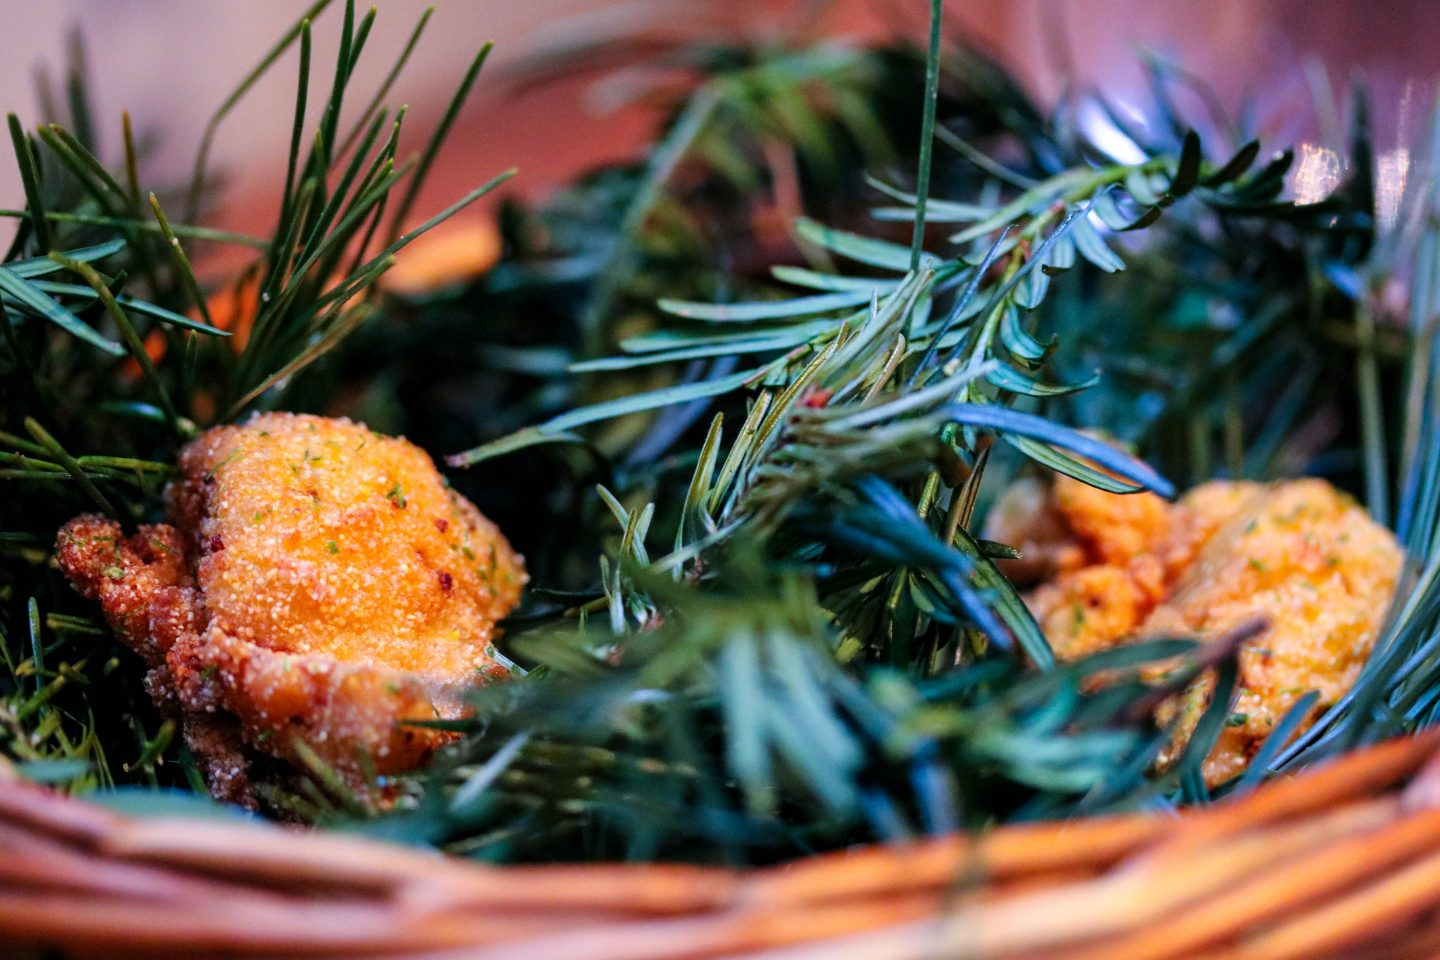 Fried chicken on pine leaves _ Clove Club _ Lifestyle Enthusiast Blog